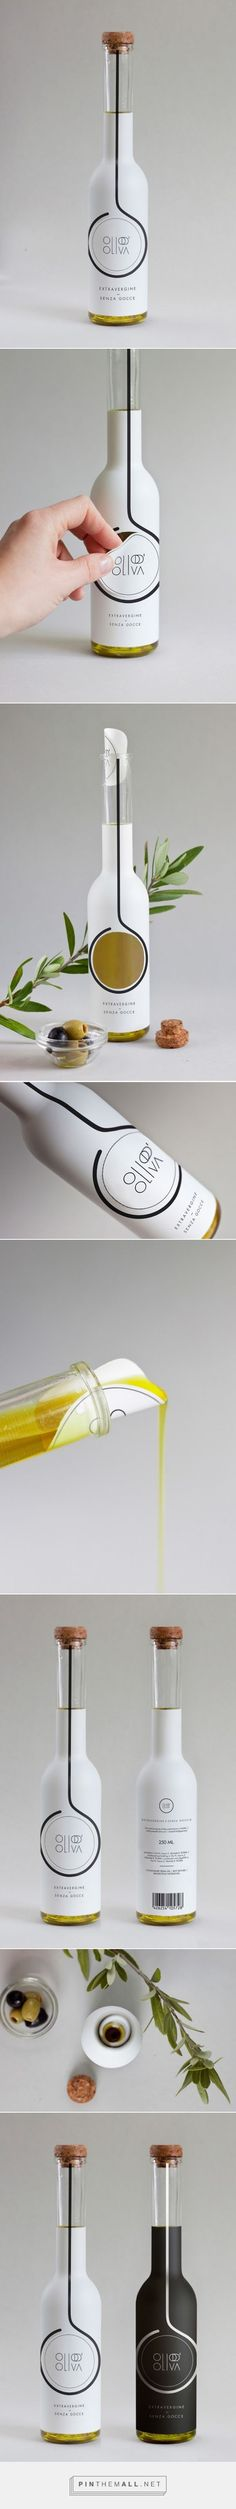 Olio D'Oliva #Concept #packaging designed by Alessia Sistori - http://www.packagingoftheworld.com/2015/05/olio-doliva-concept.html: